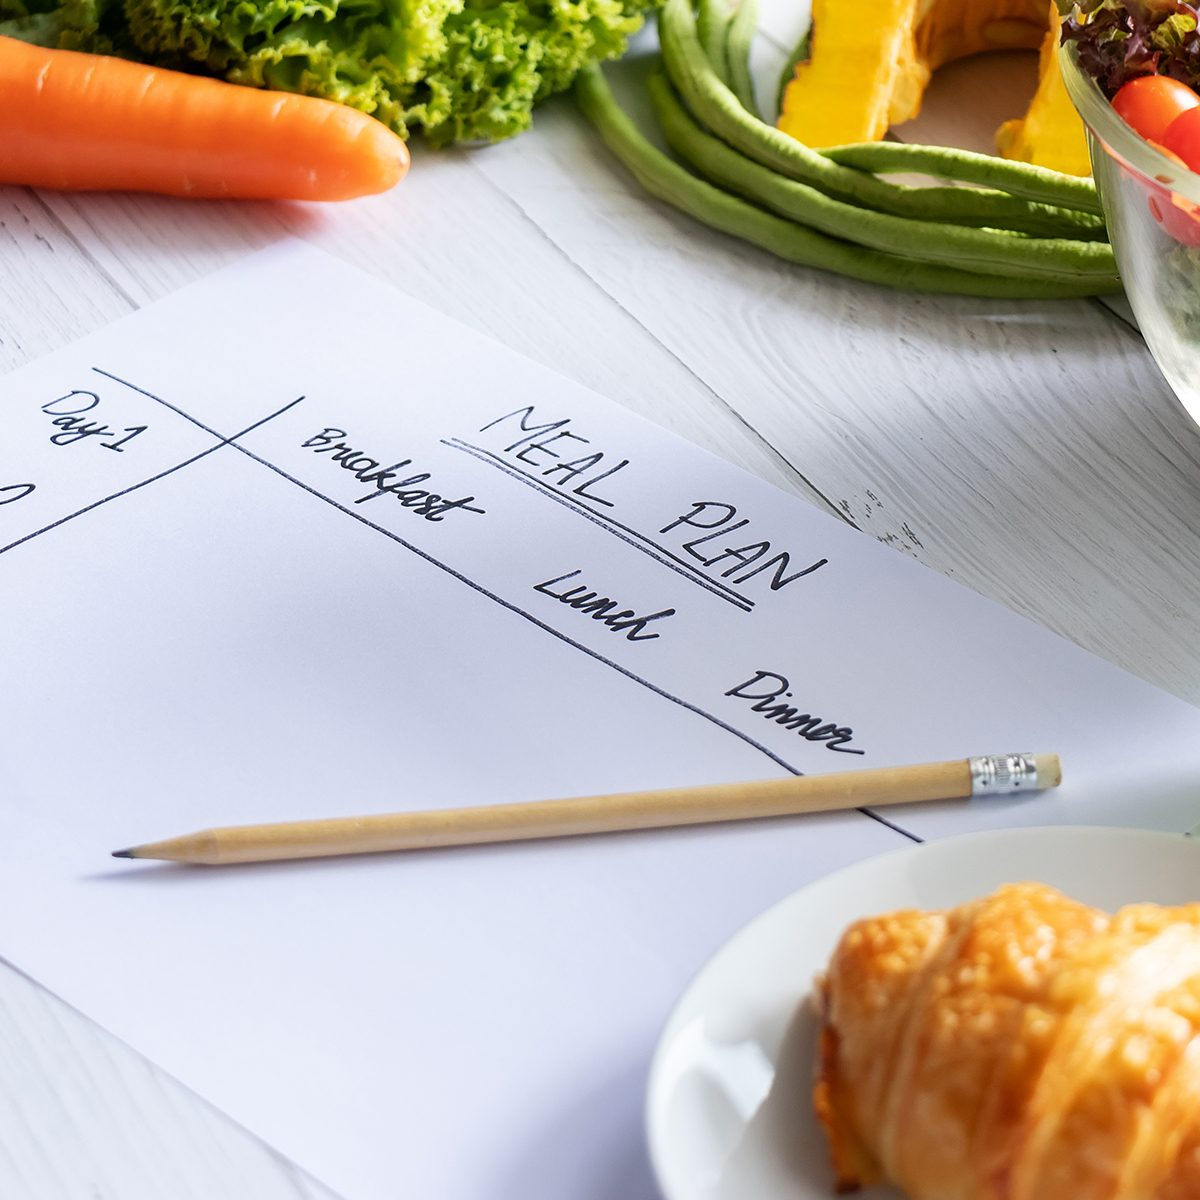 Calories control, meal plan, food diet and weight loss concept. top view of meal plan table on paper with salad, fruit juice, bread and vegetable; Shutterstock ID 1483948601; Job (TFH, TOH, RD, BNB, CWM, CM): TOH